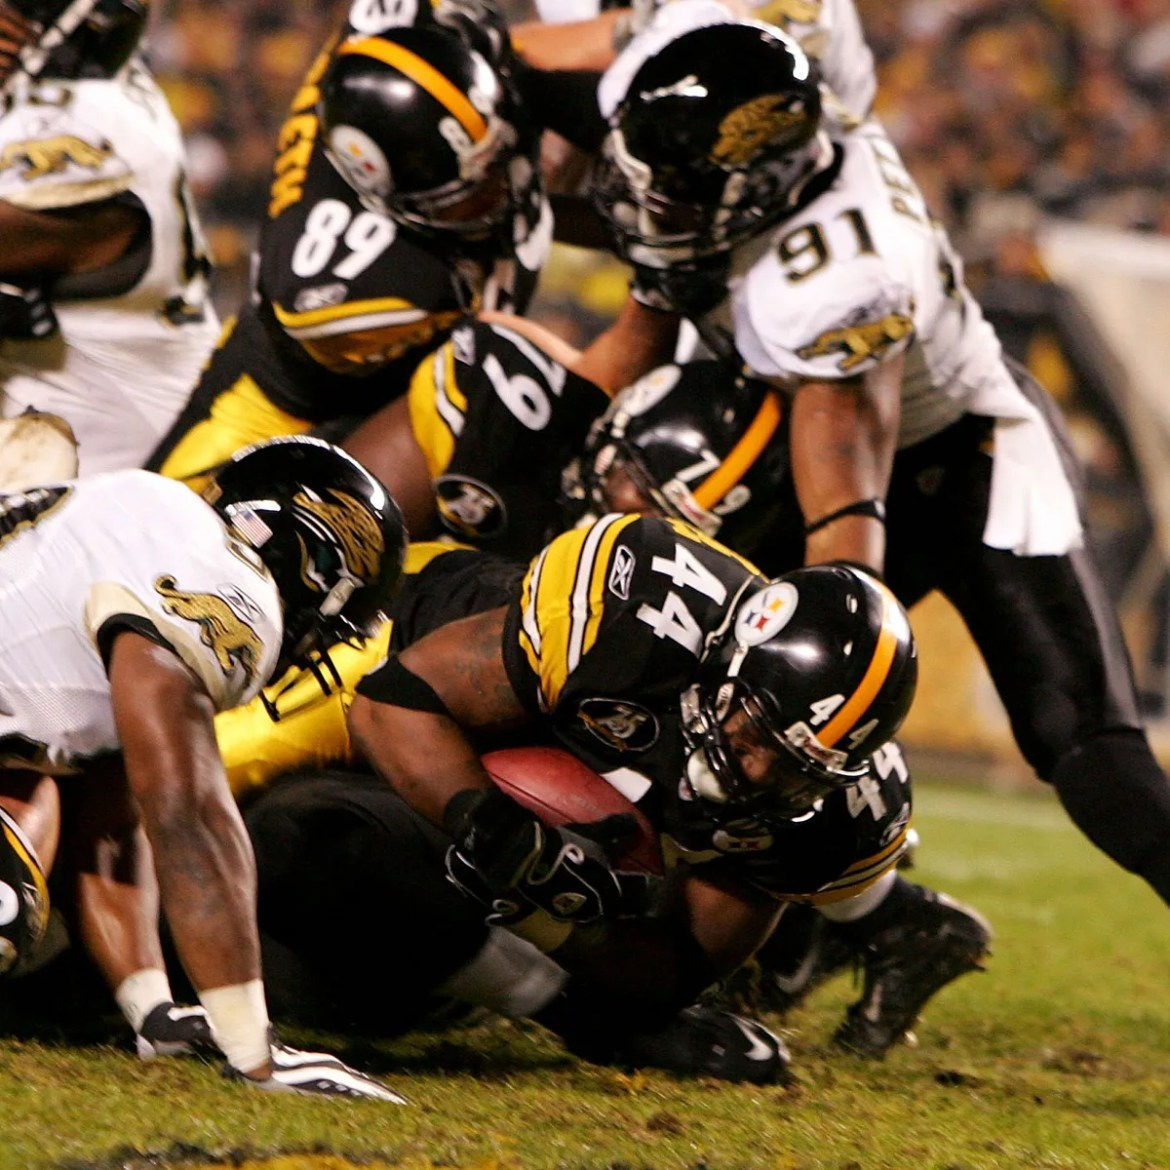 NFL to End 'Race-Norming' That Diminished Black Injuries